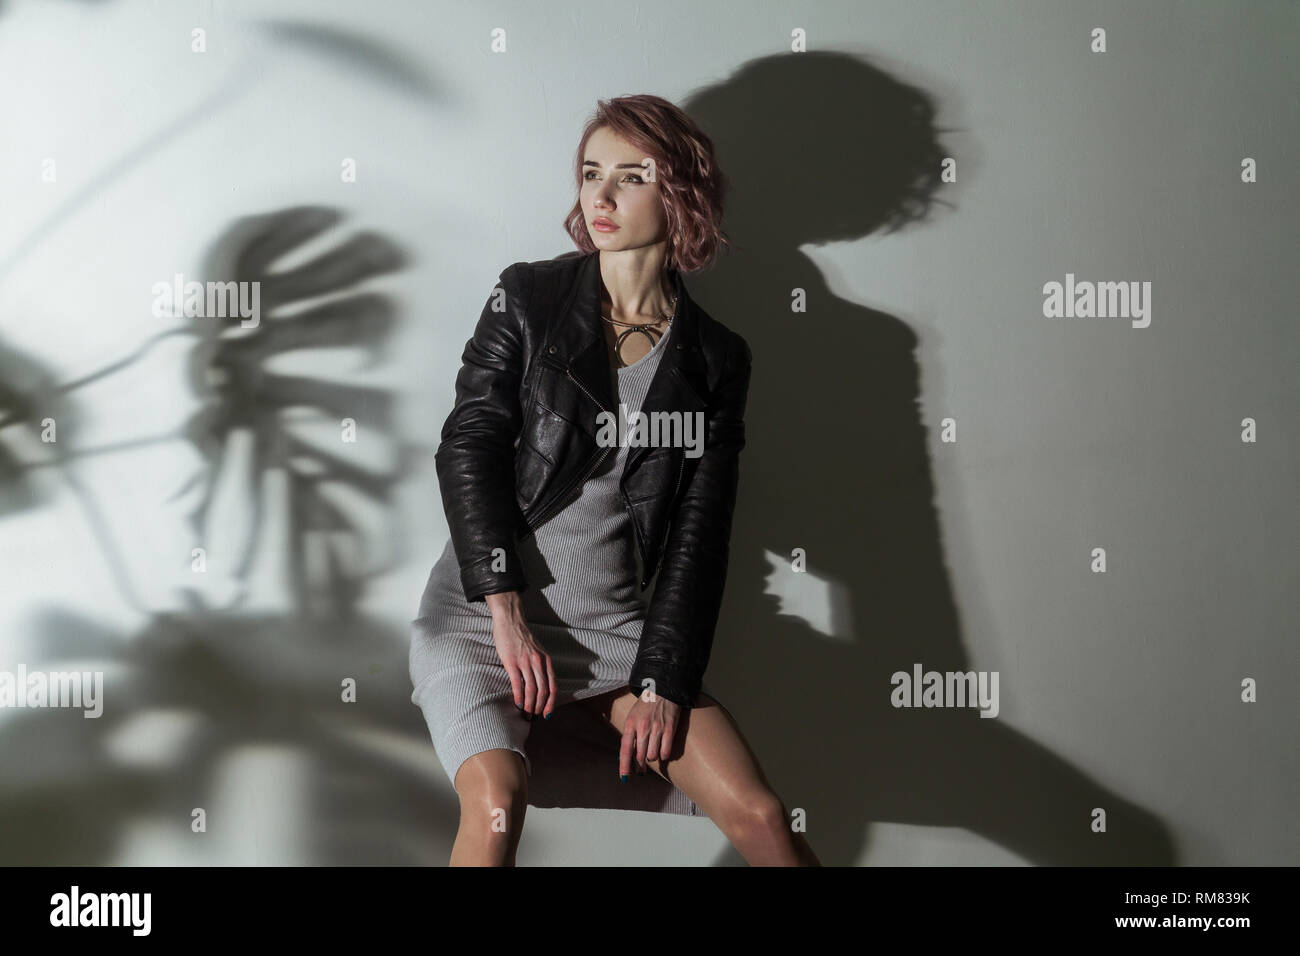 0e4804541d8 beautiful woman with makeup and short pink hair in grey dress and ...